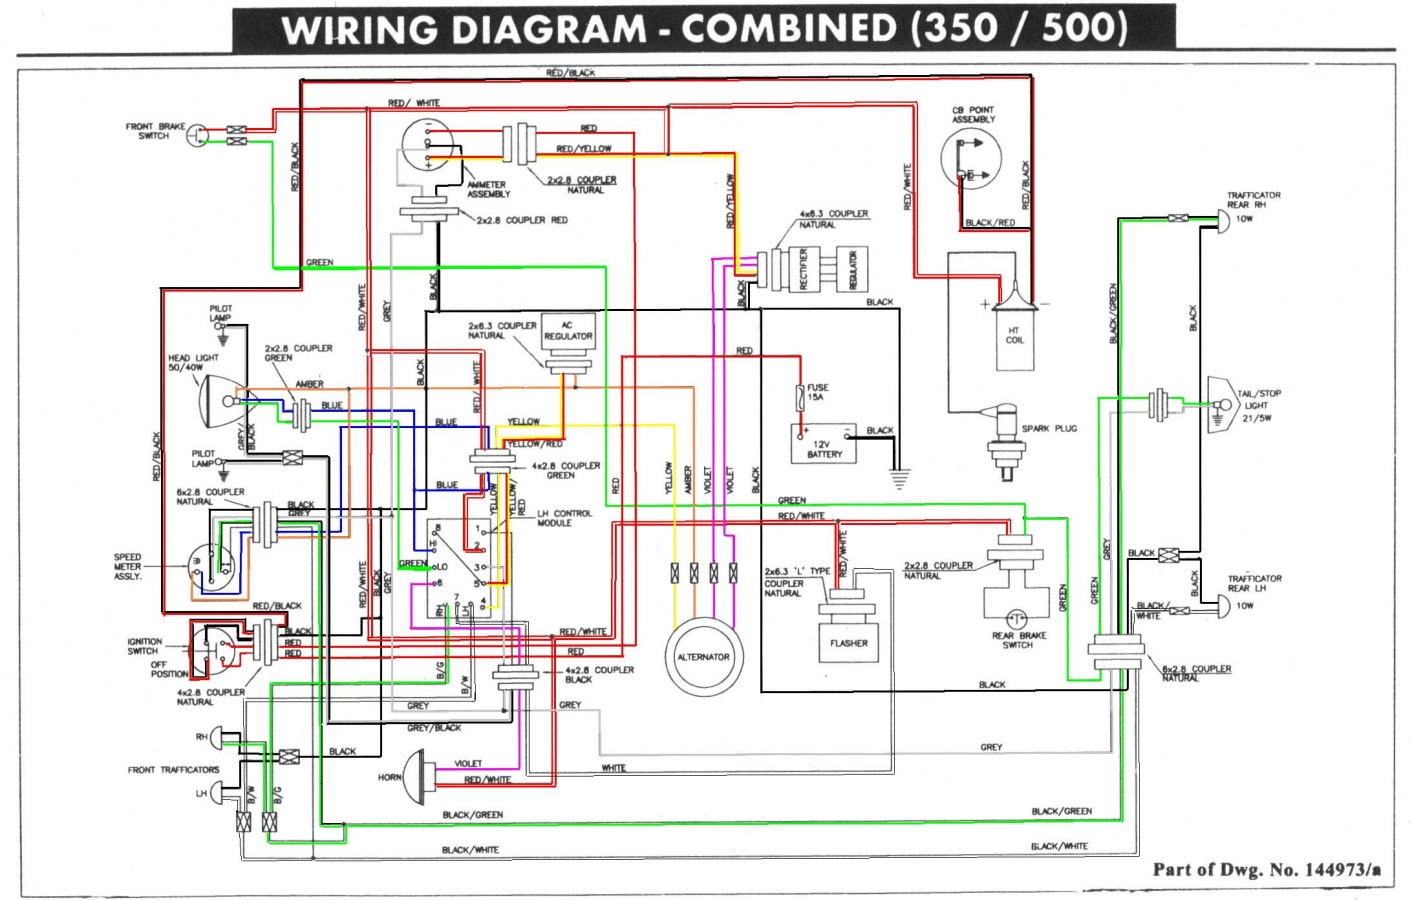 diagrams 875667 royal enfield 350 wiring diagram royal enfield royal enfield wiring diagrams at mifinder.co